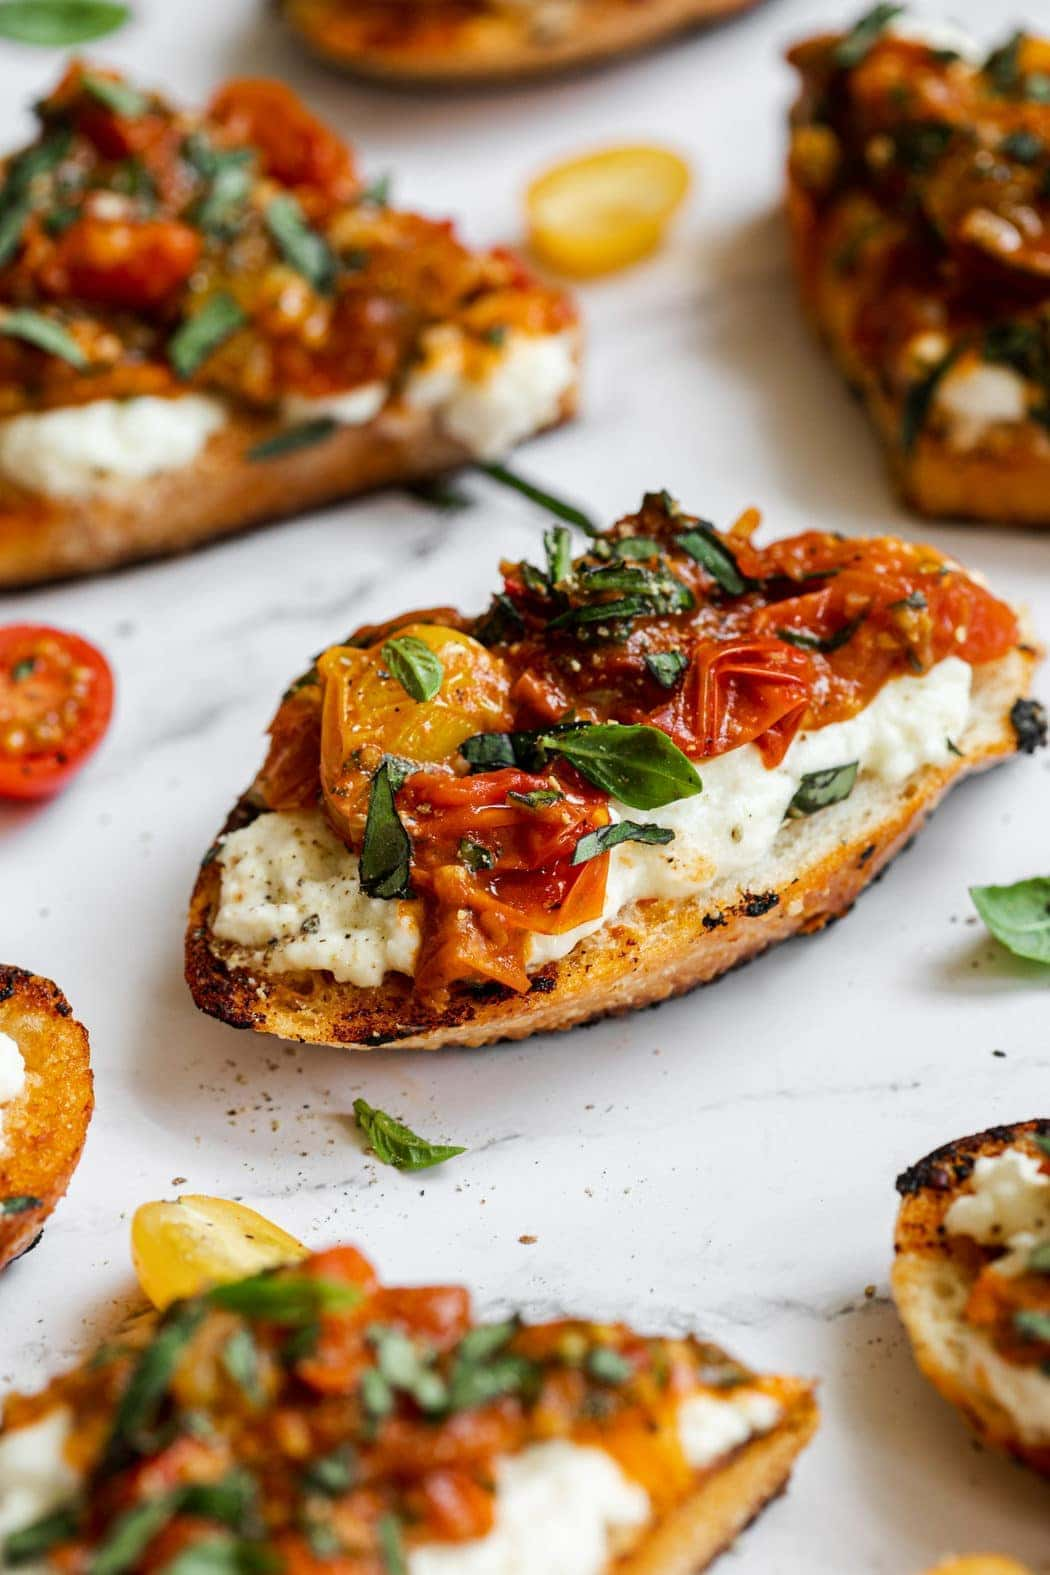 Freshly made bruschetta on crusty bread and topped with burrata, tomatoes, and fresh basil